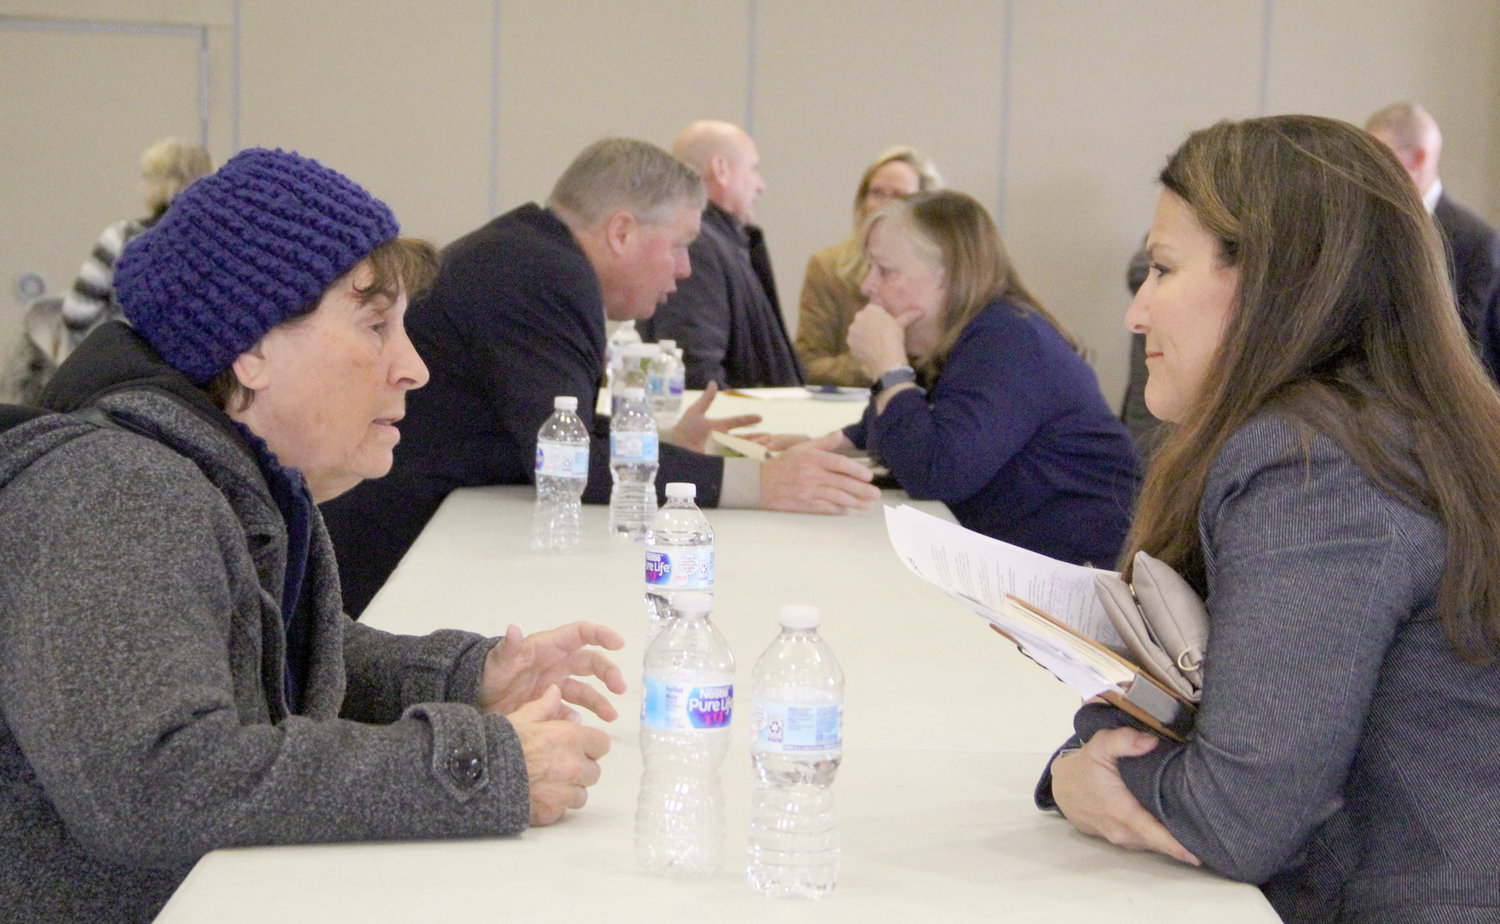 Sen. Chris Cournoyer, front right, and Rep. Monica Kurth, back right, talk with residents after the forum.